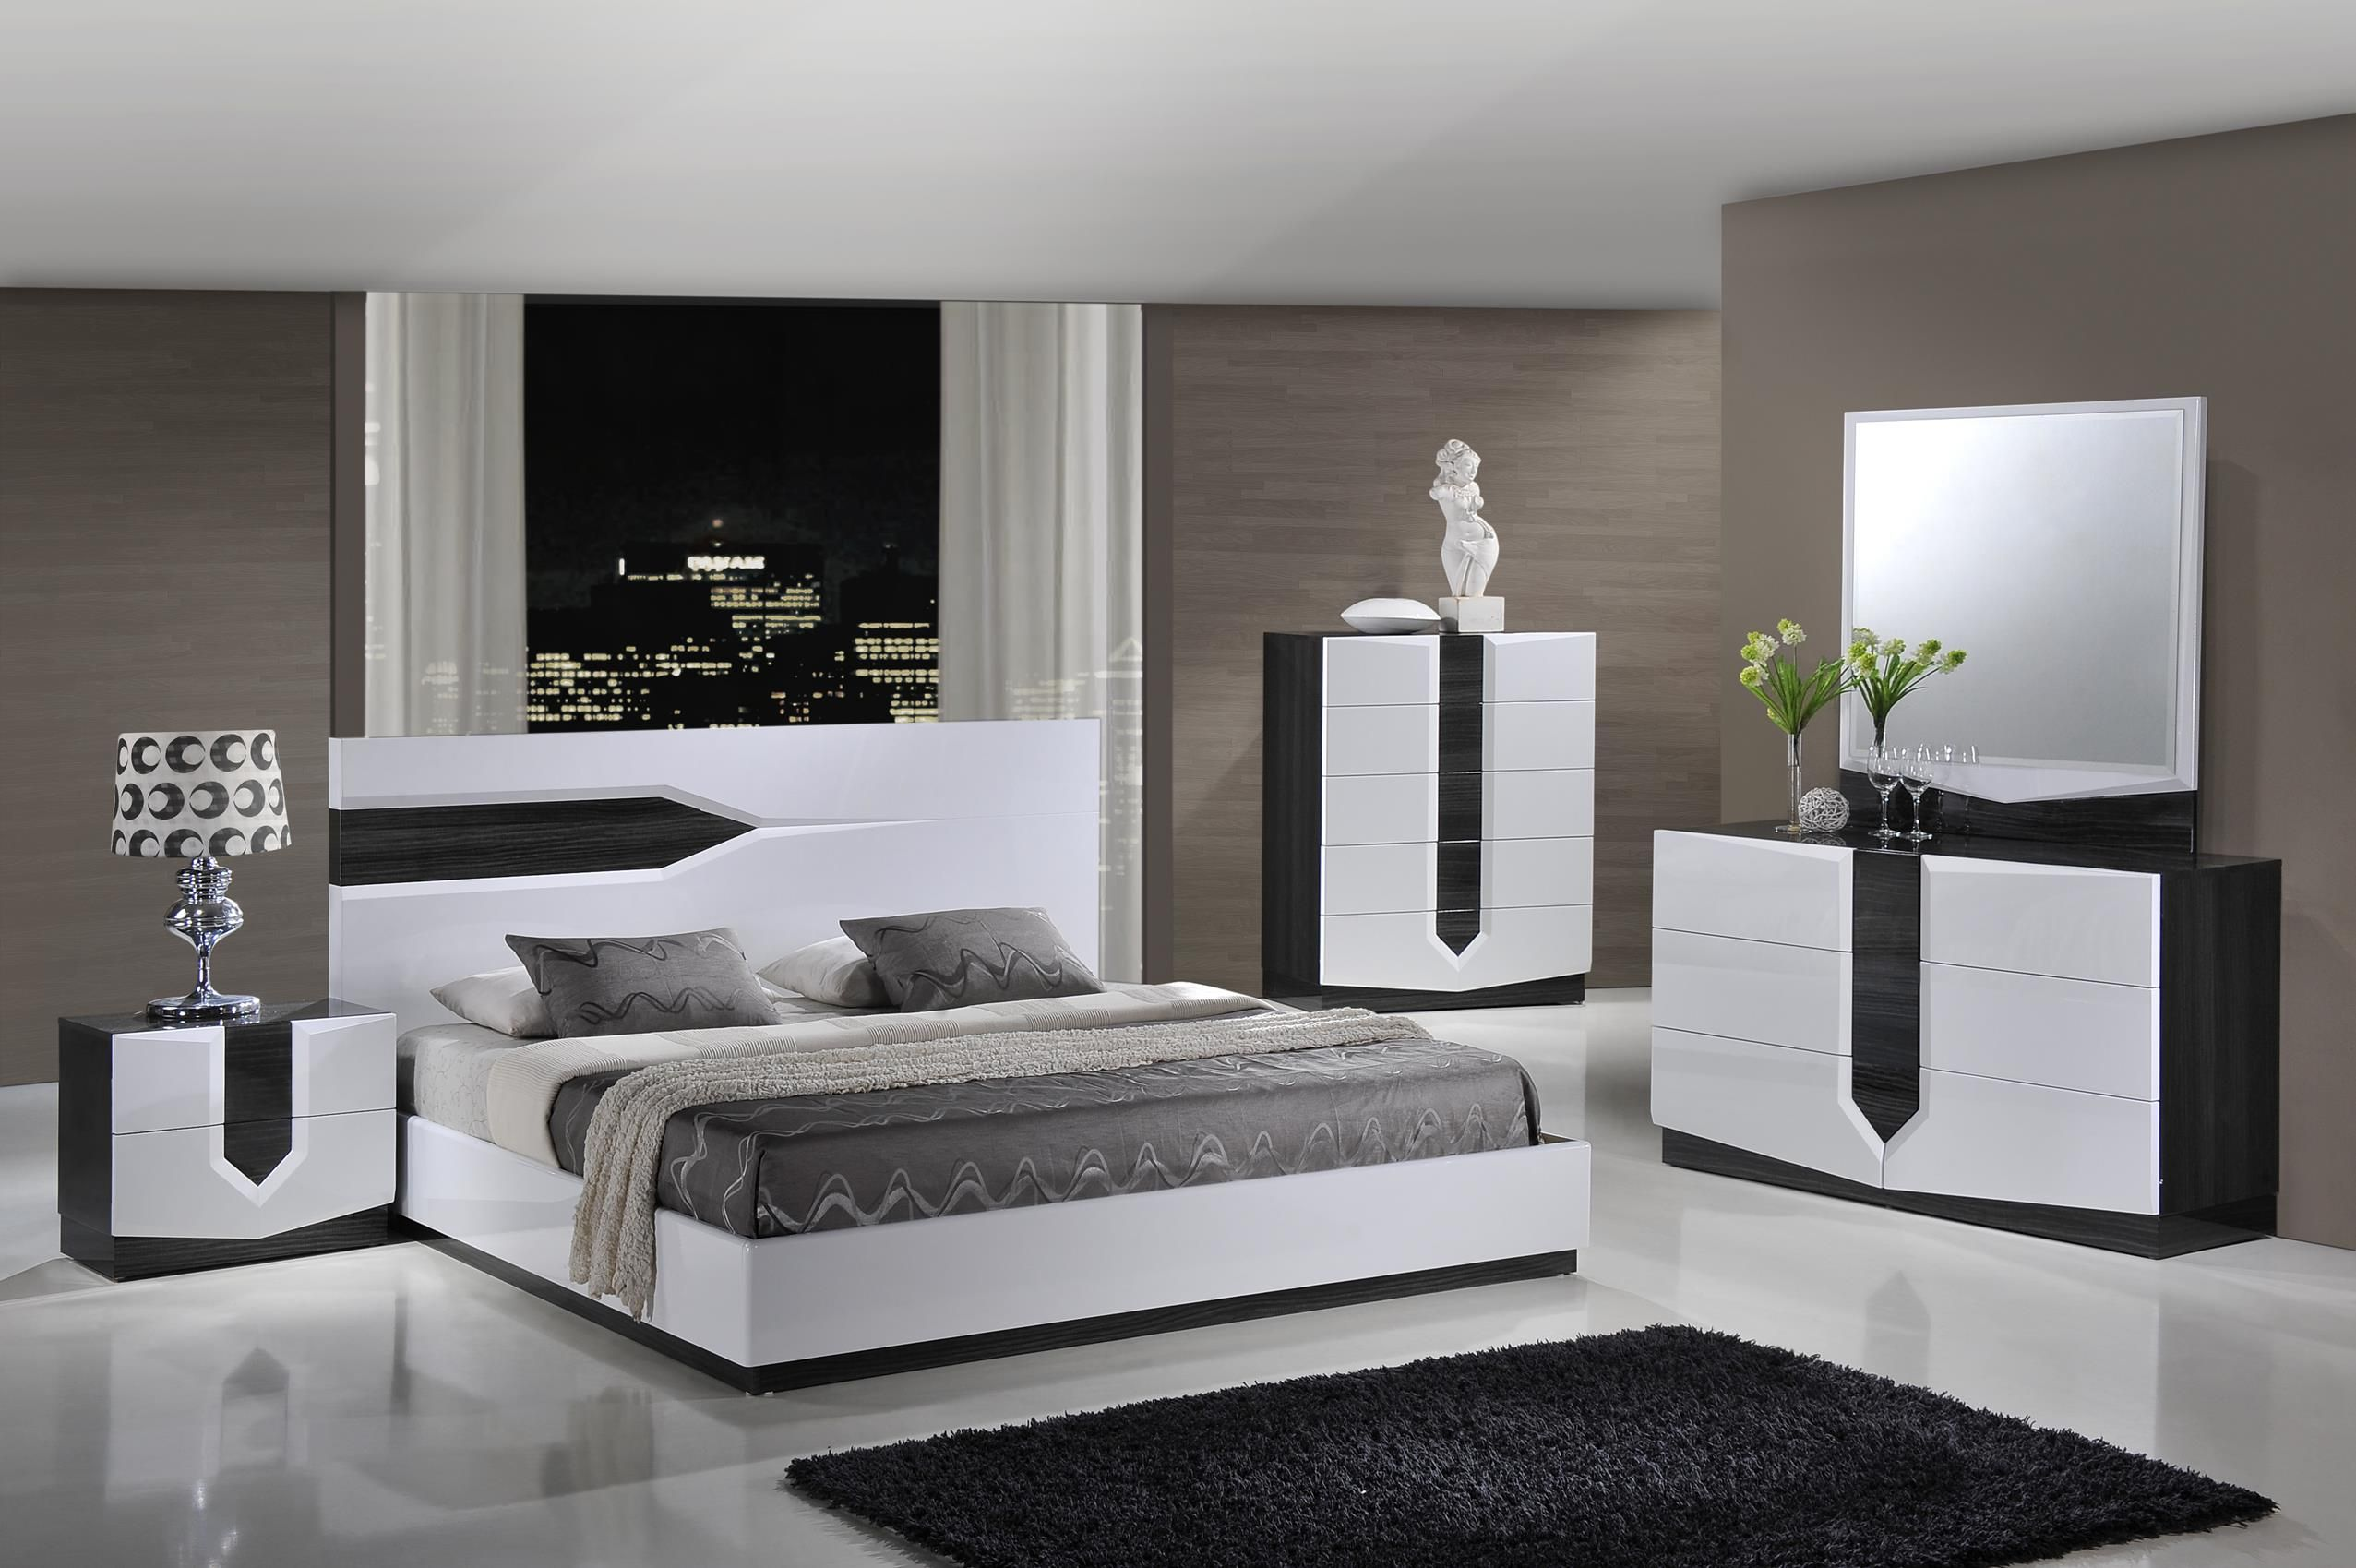 crammed size from for ideas frame king on bedding design floor tall furniture bedroom in contemporary modern canopy linen brings set sturdy queen fabric beautiful download of javedchaudhry black headboard cheap wood leather with home sale full and platform grey headboards wooden the upholstered